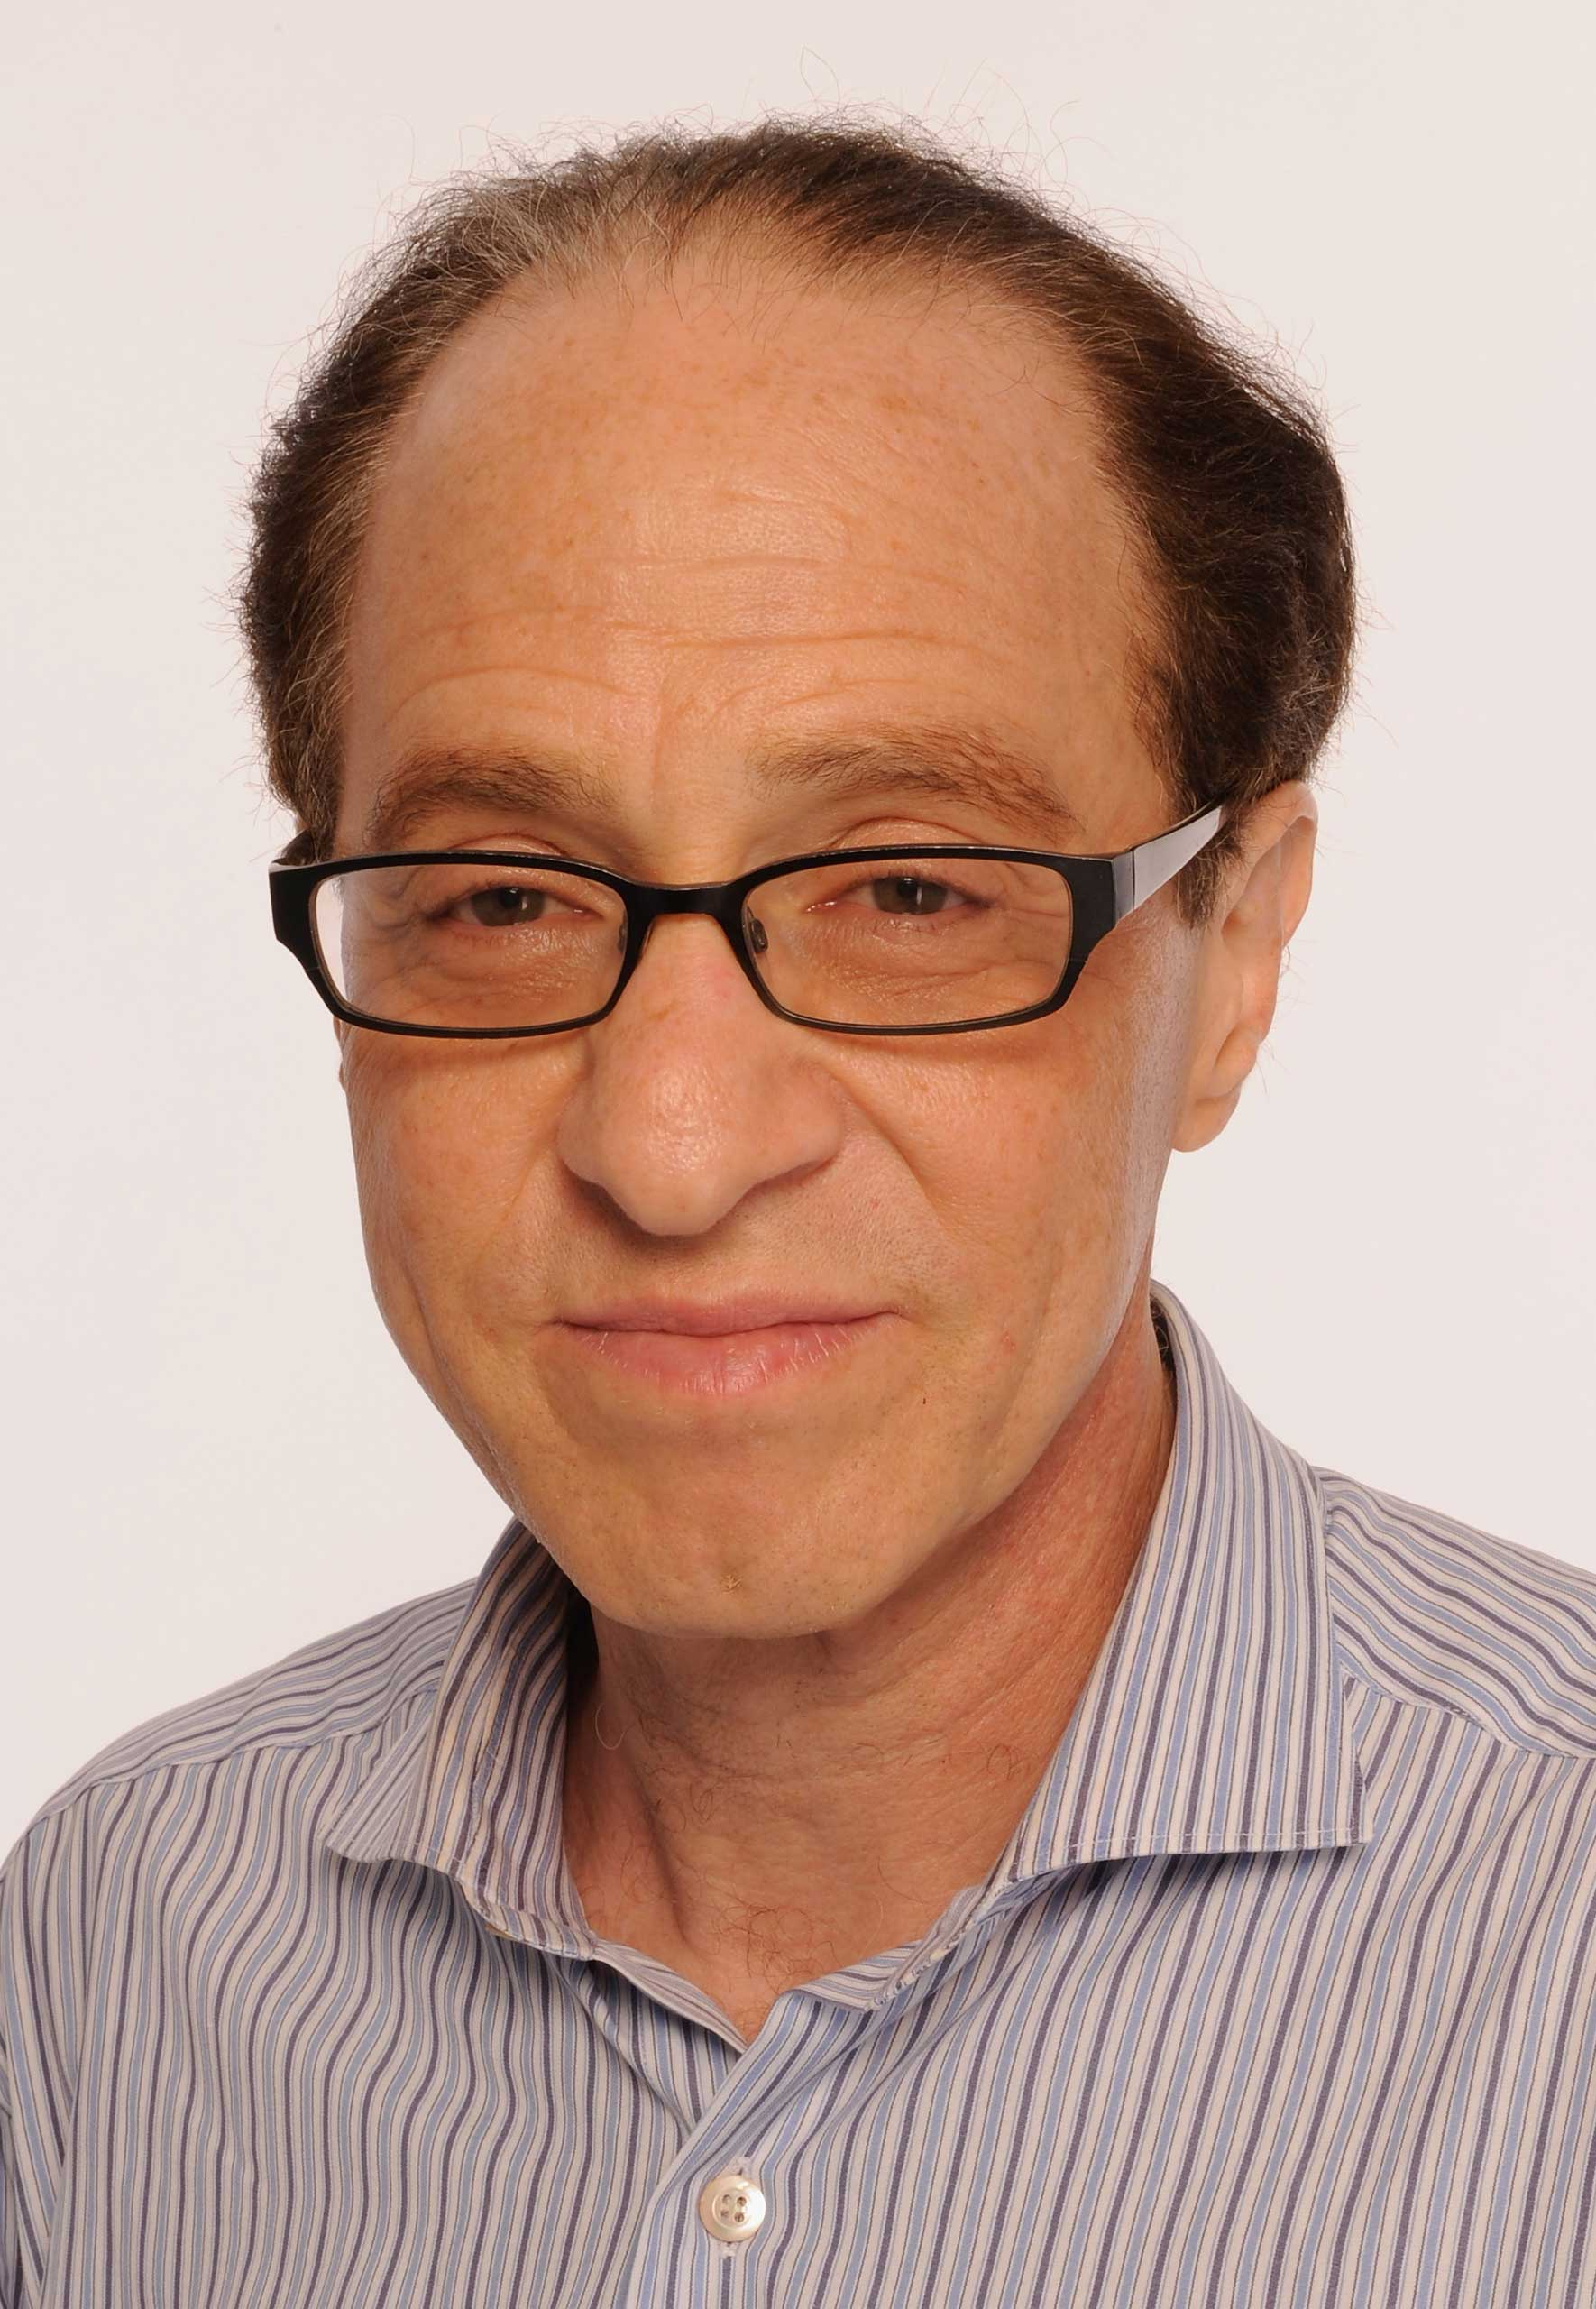 Inventor Ray Kurzweil attends the Tribeca Film Festival 2009 portrait studio at DIRECTV Tribeca Press Center on April 27, 2009 in New York City.